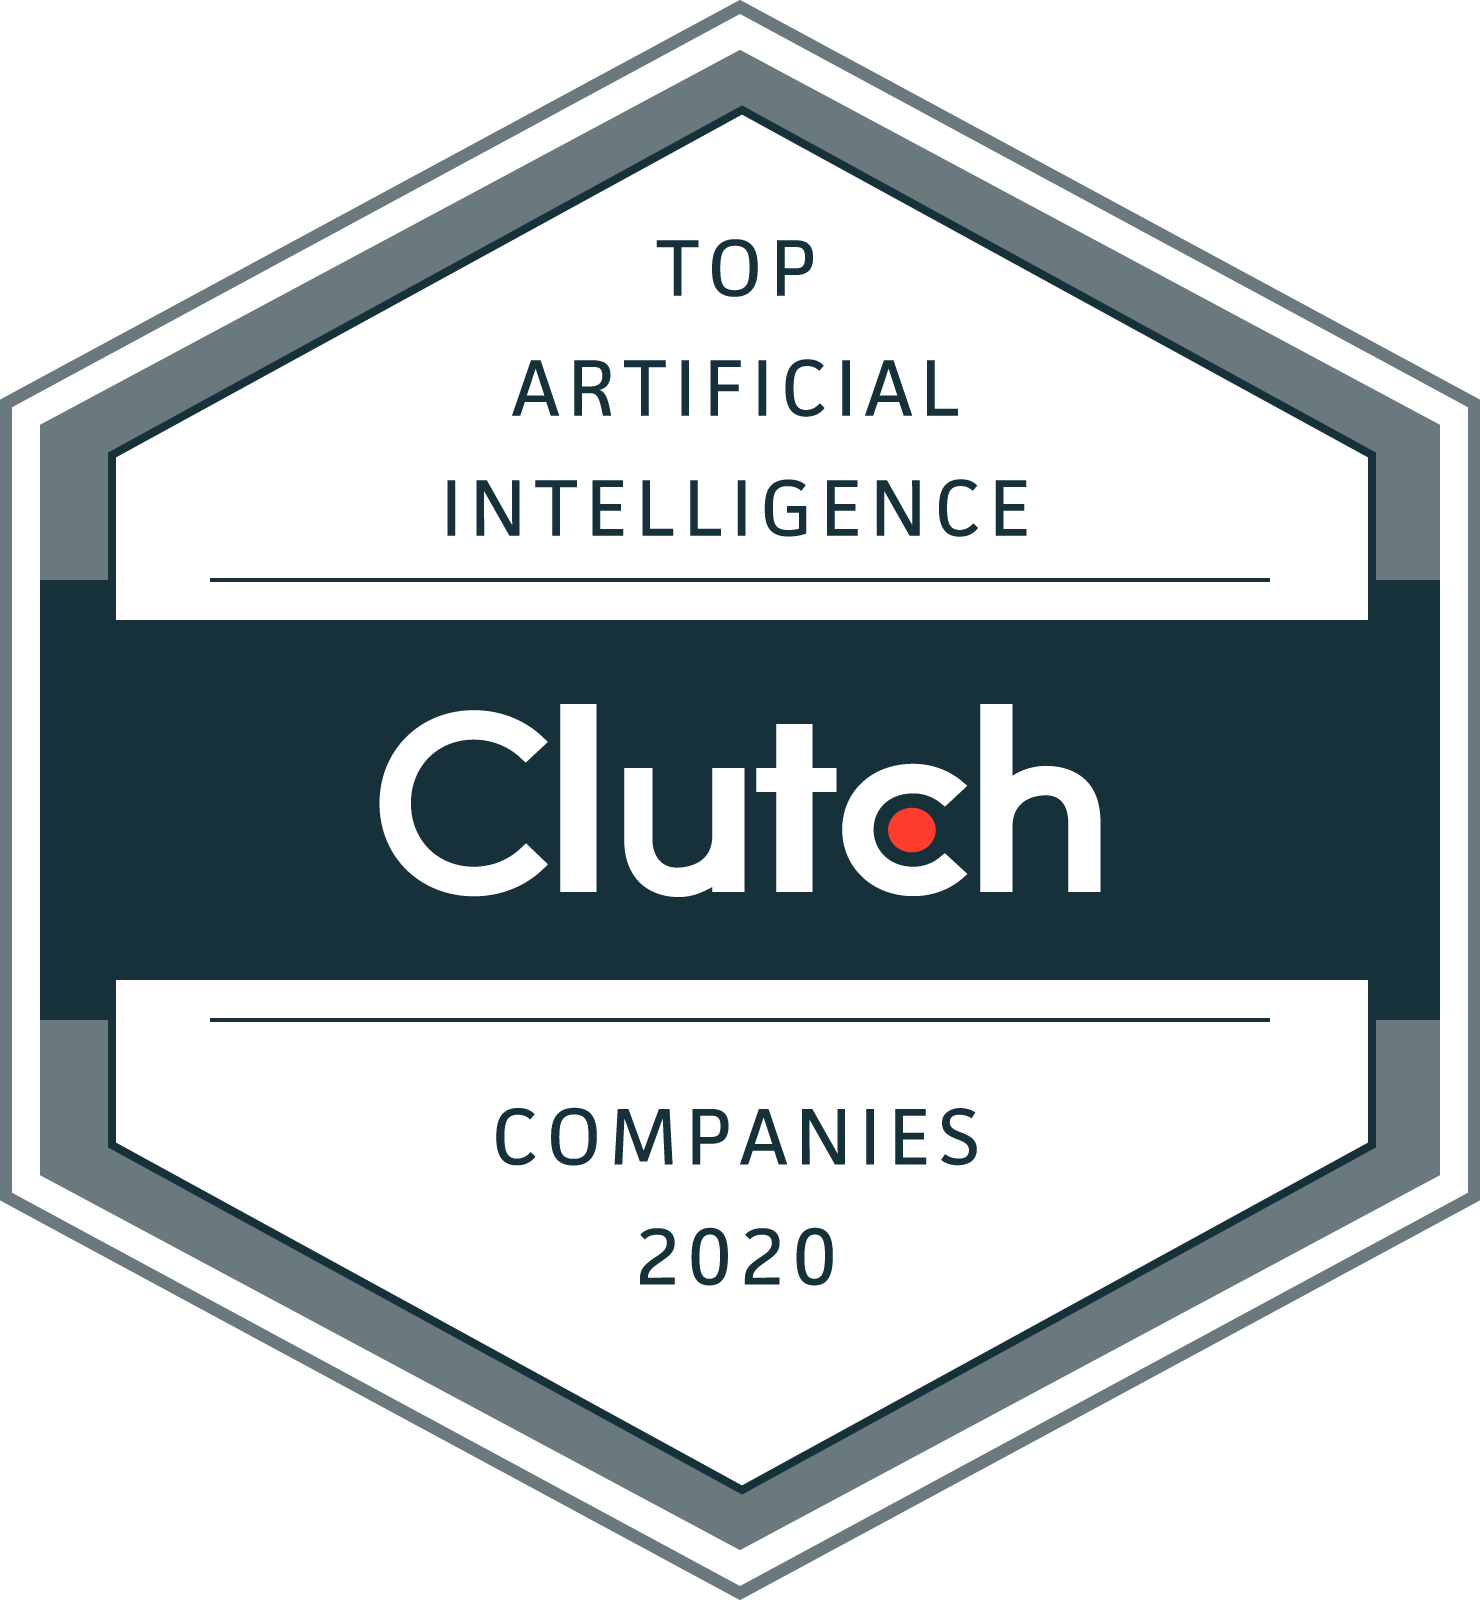 Artificial_Intelligence_Companies_2020 (10)